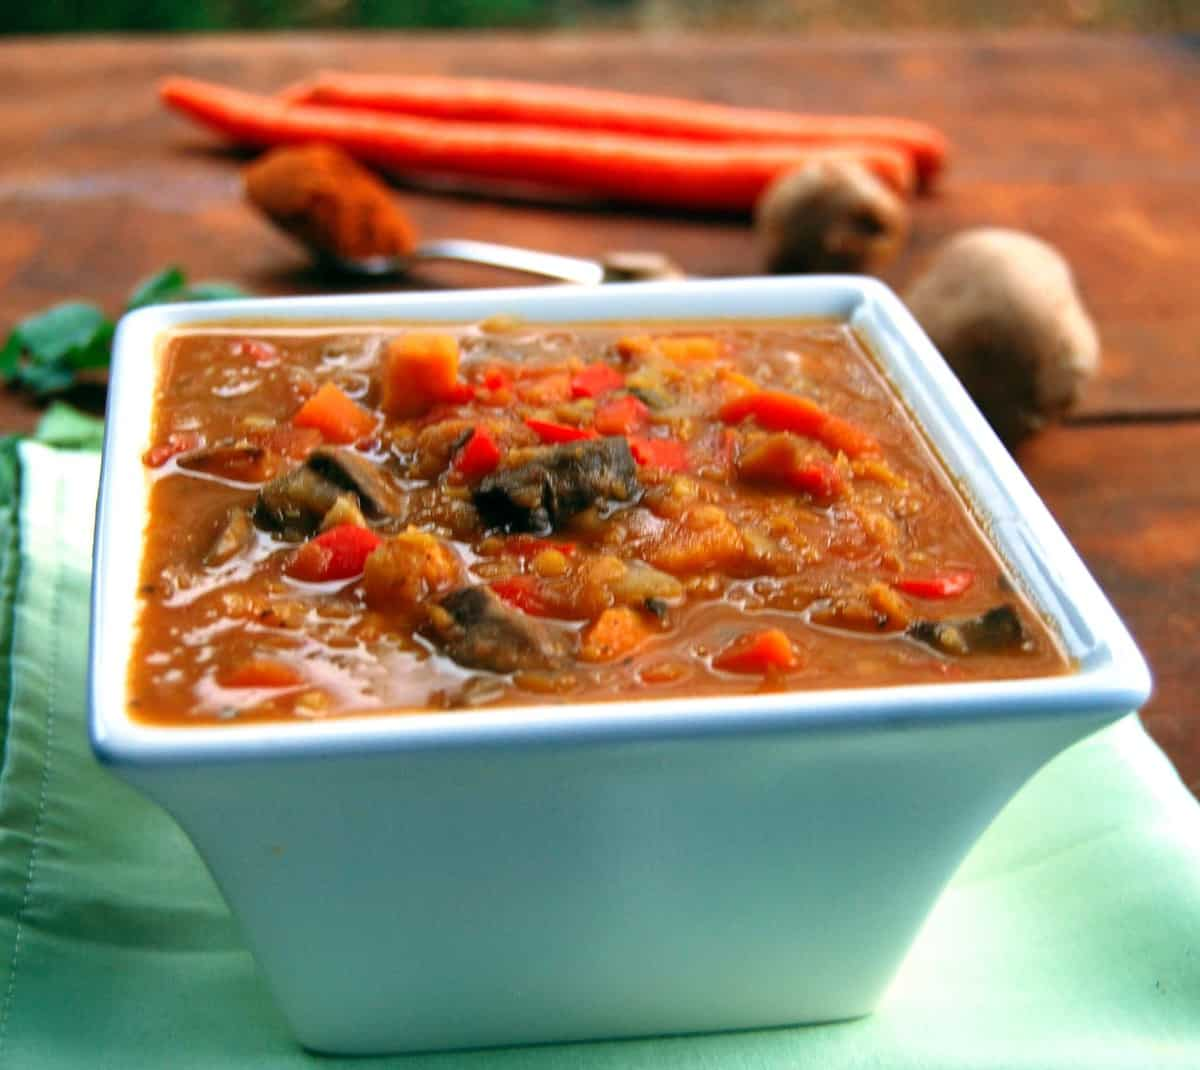 Ethiopian vegetable stew in a bowl with vegetables like carrots and mushrooms in background.